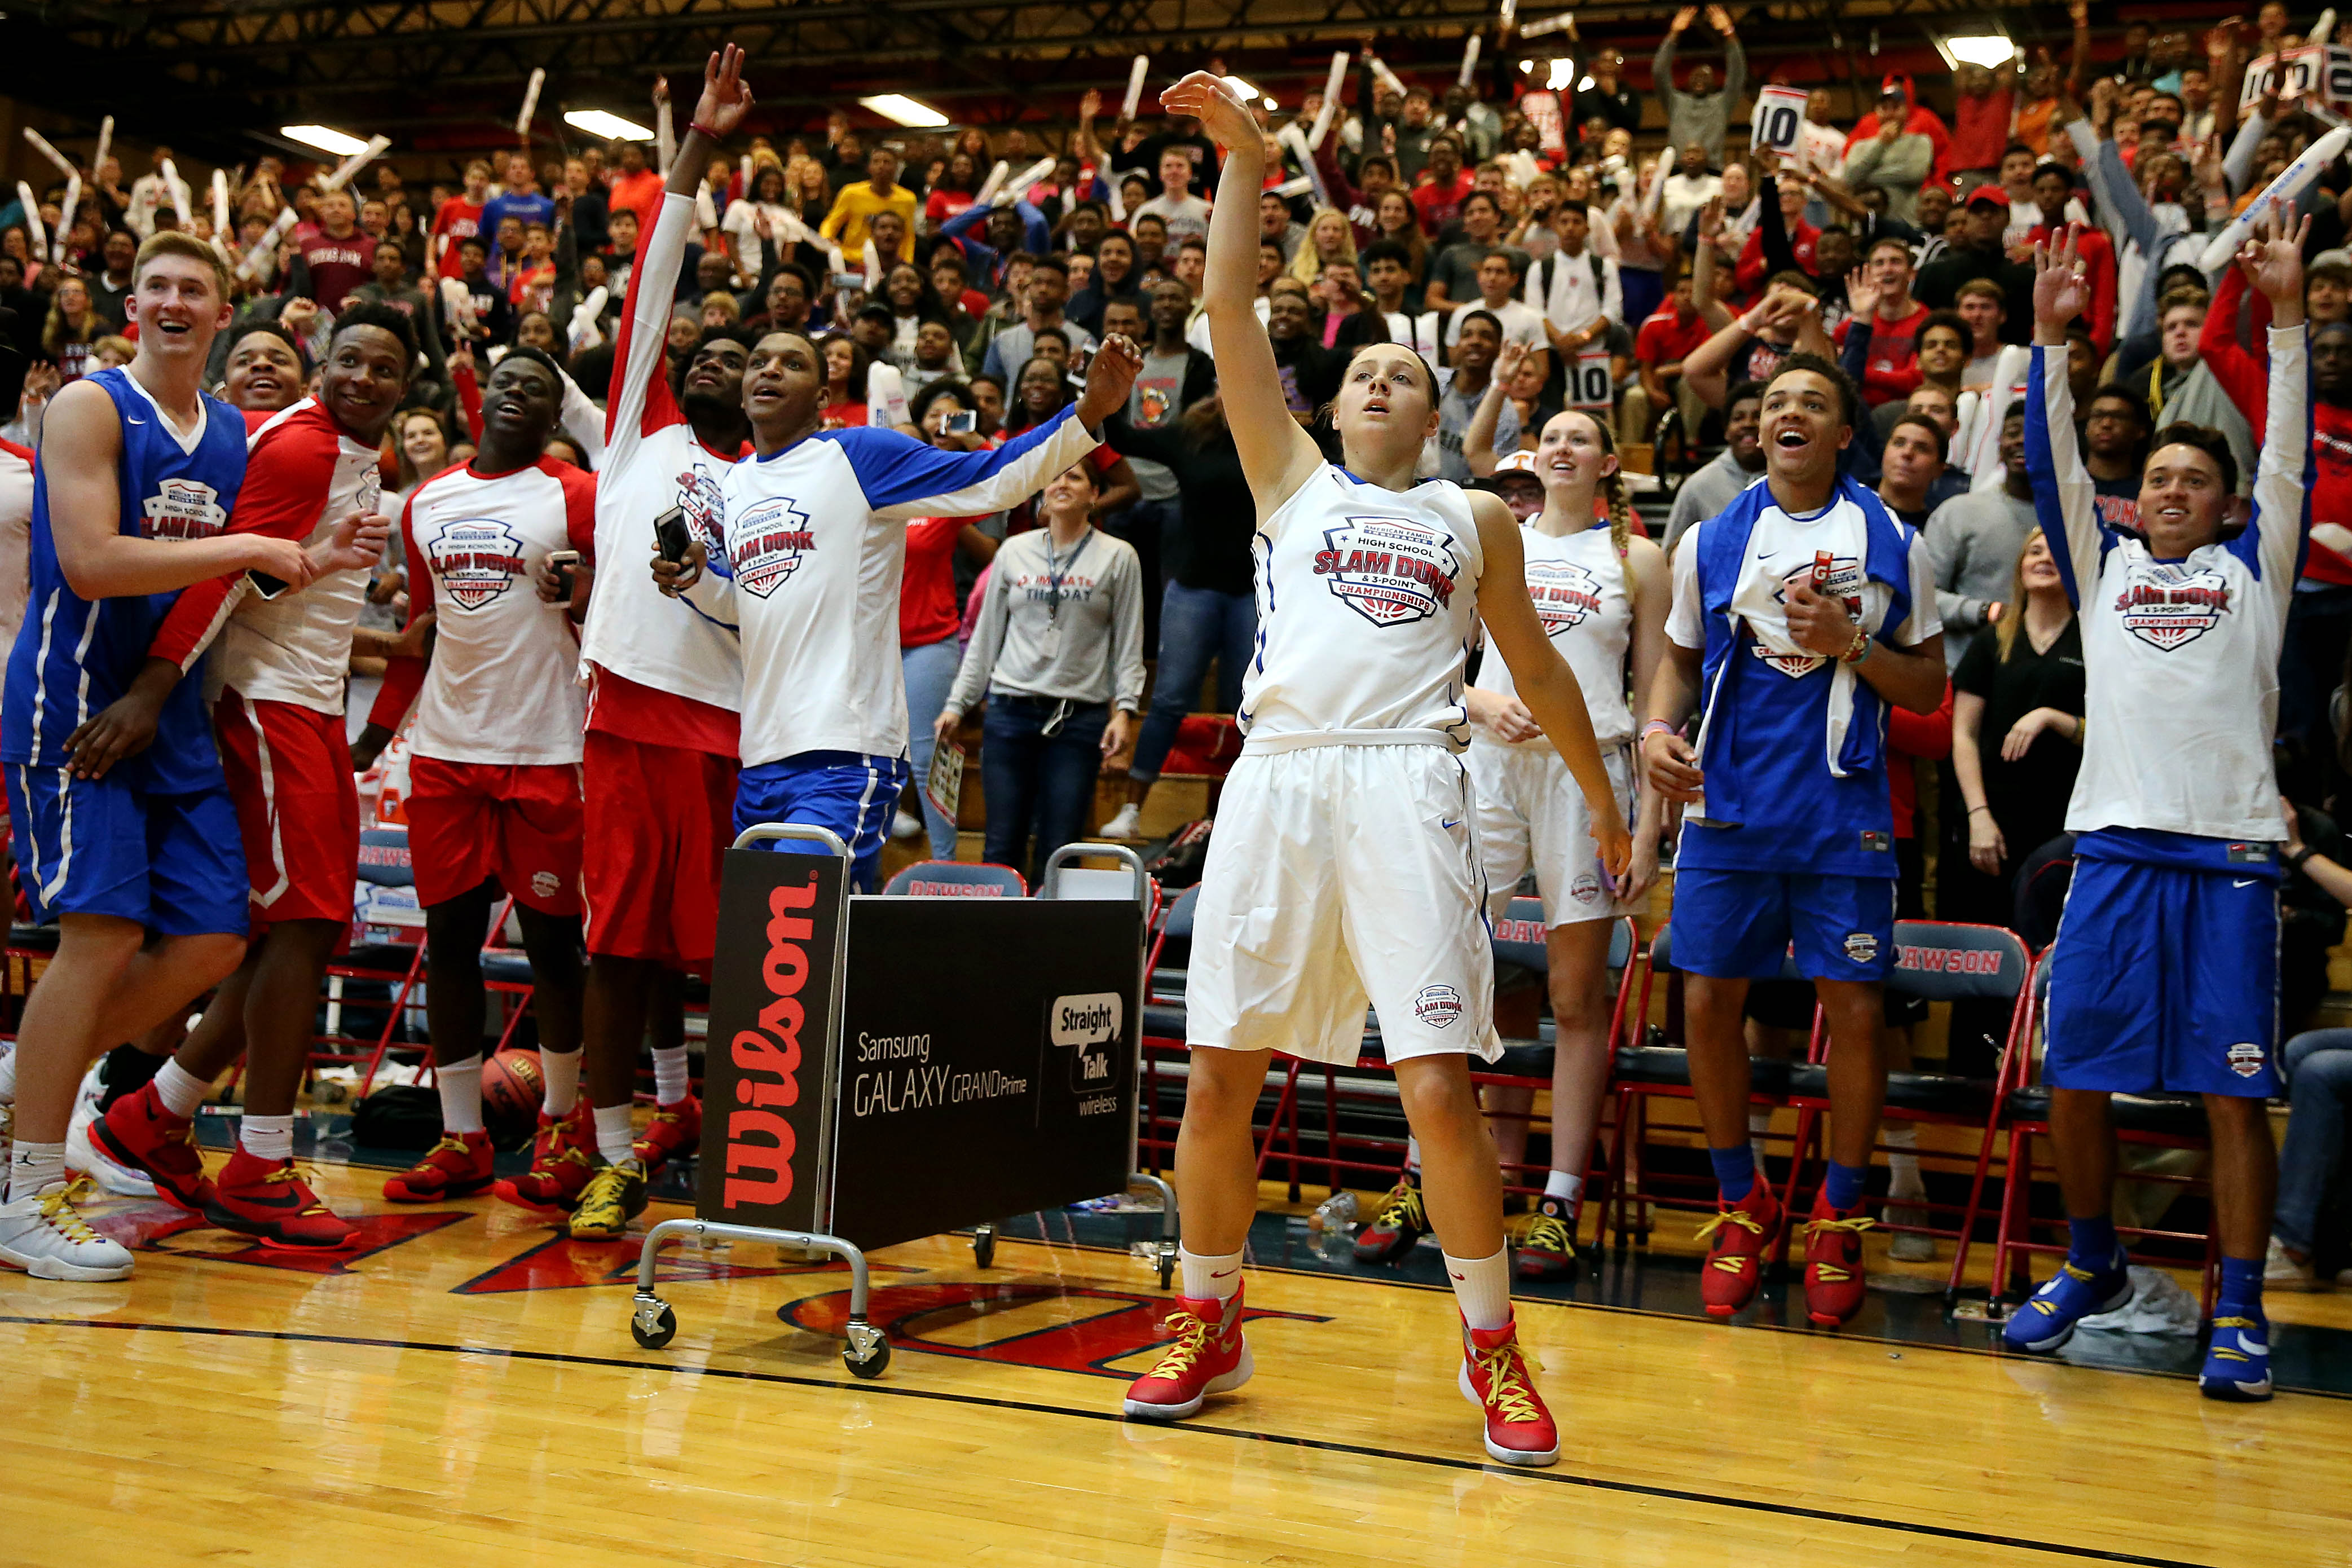 Mikayla Pevic reacts after her last shot during the American Family High School Slam and 3-point championship (Photo: Peter Casey, USA TODAY Sports)